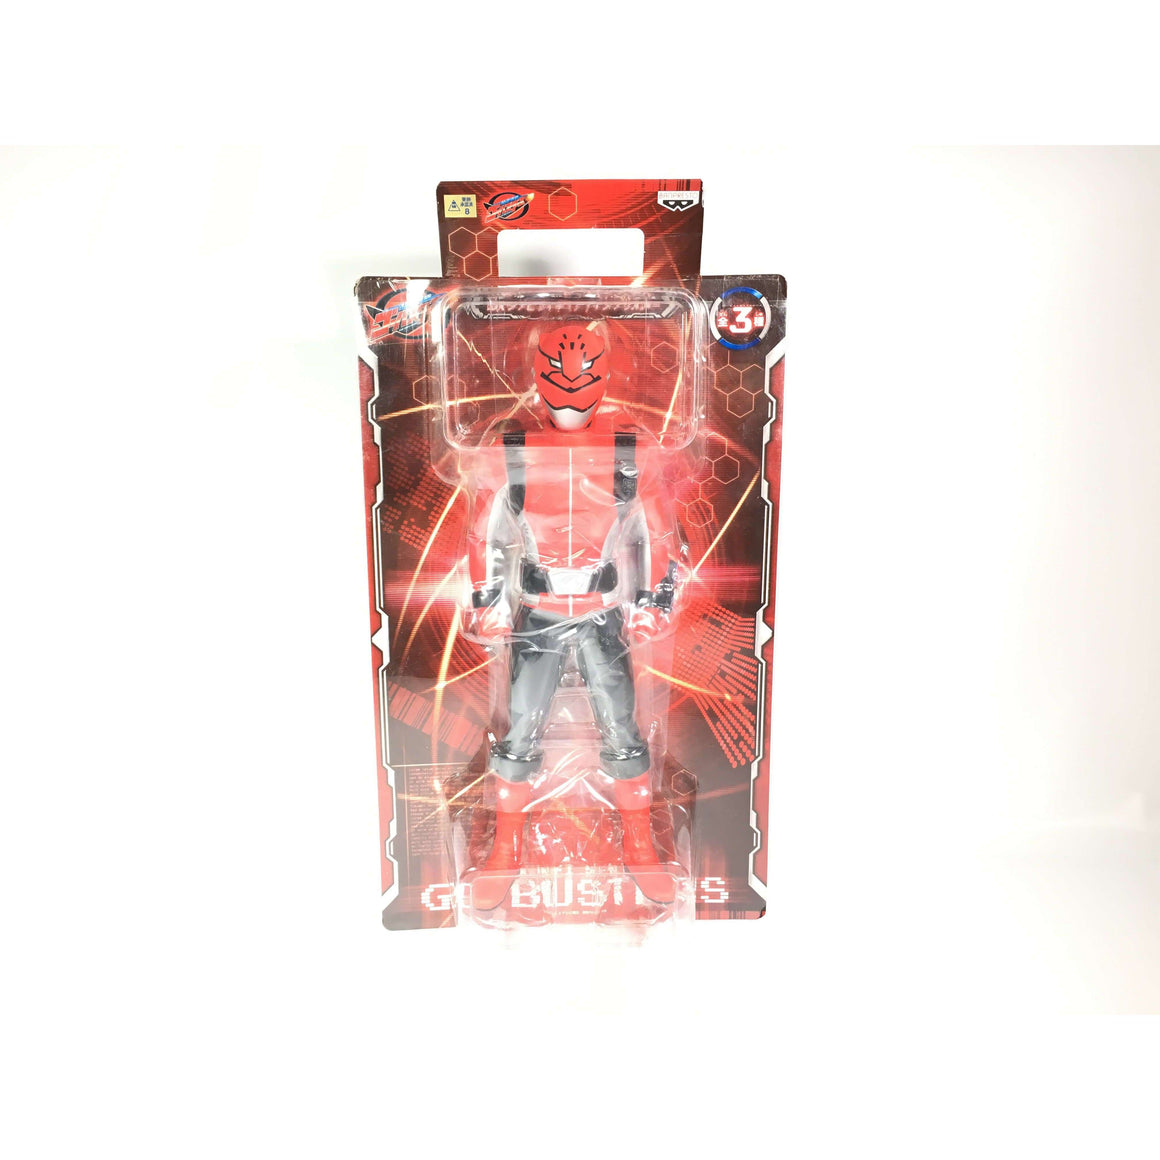 CSTOYS INTERNATIONAL:[BOXED] Tokumei Sentai Go-Busters: Large Red Buster Vinyl Figure